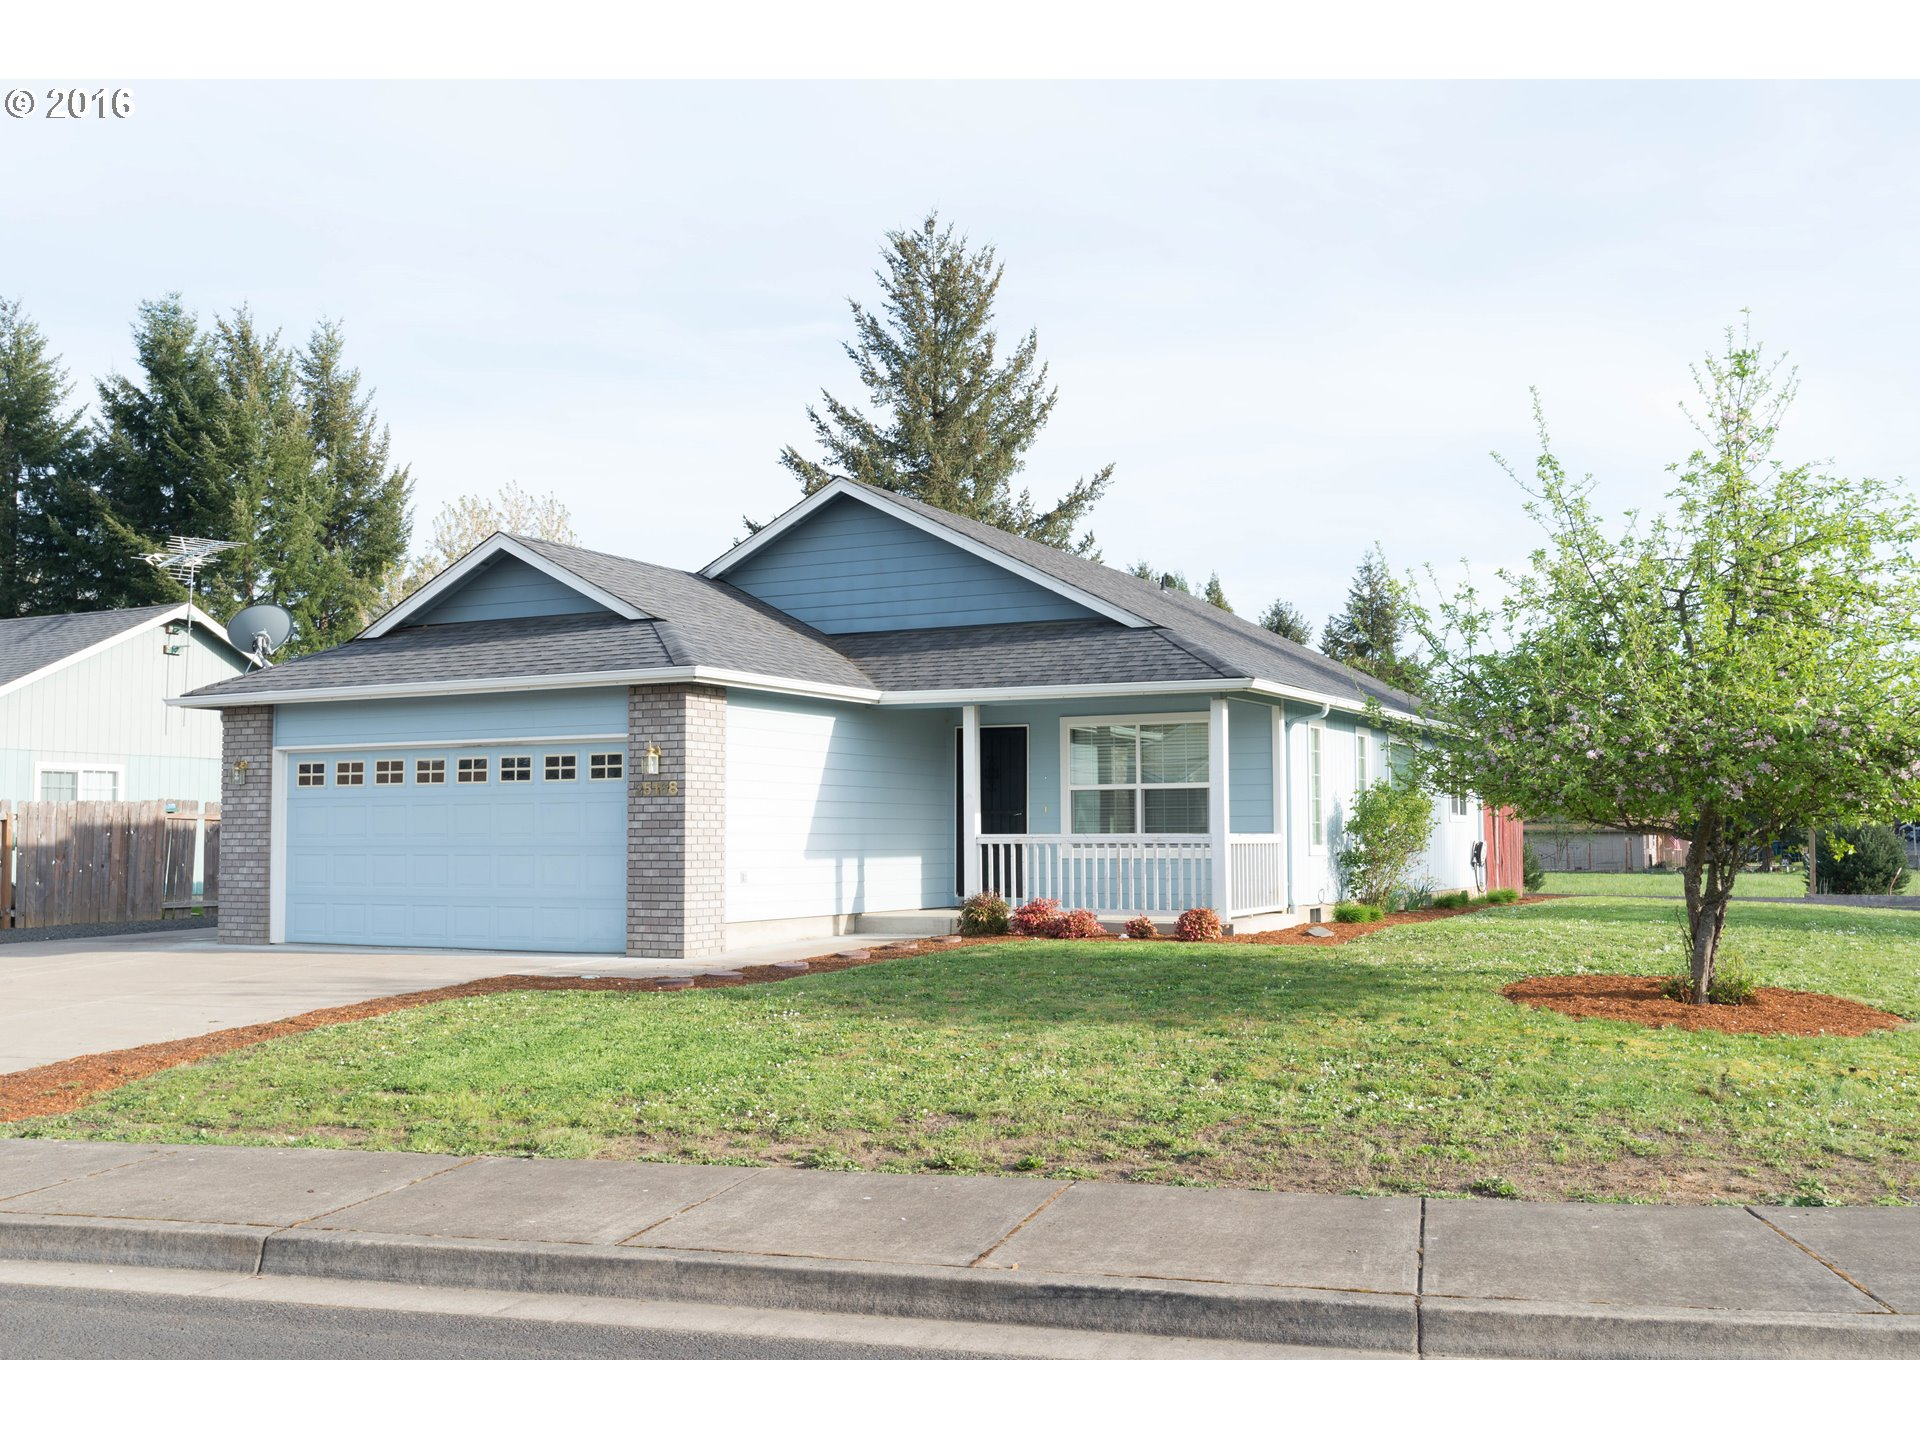 25168 Jake St, Veneta, OR